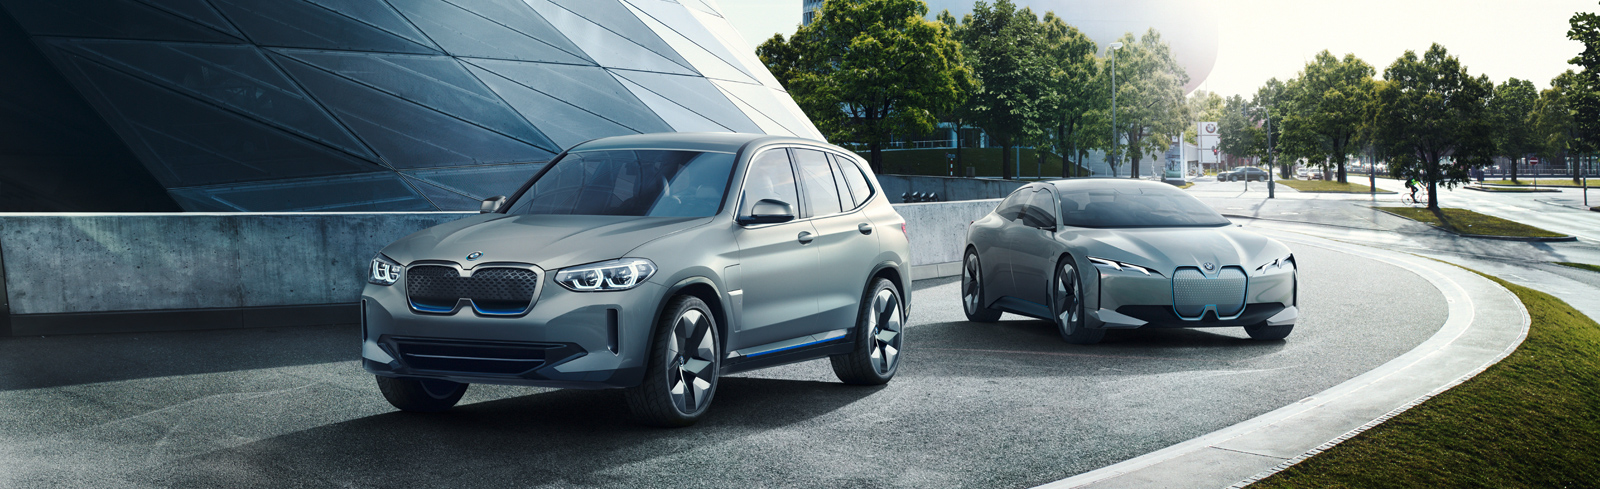 BMW iX3 teased during the BMW press conference